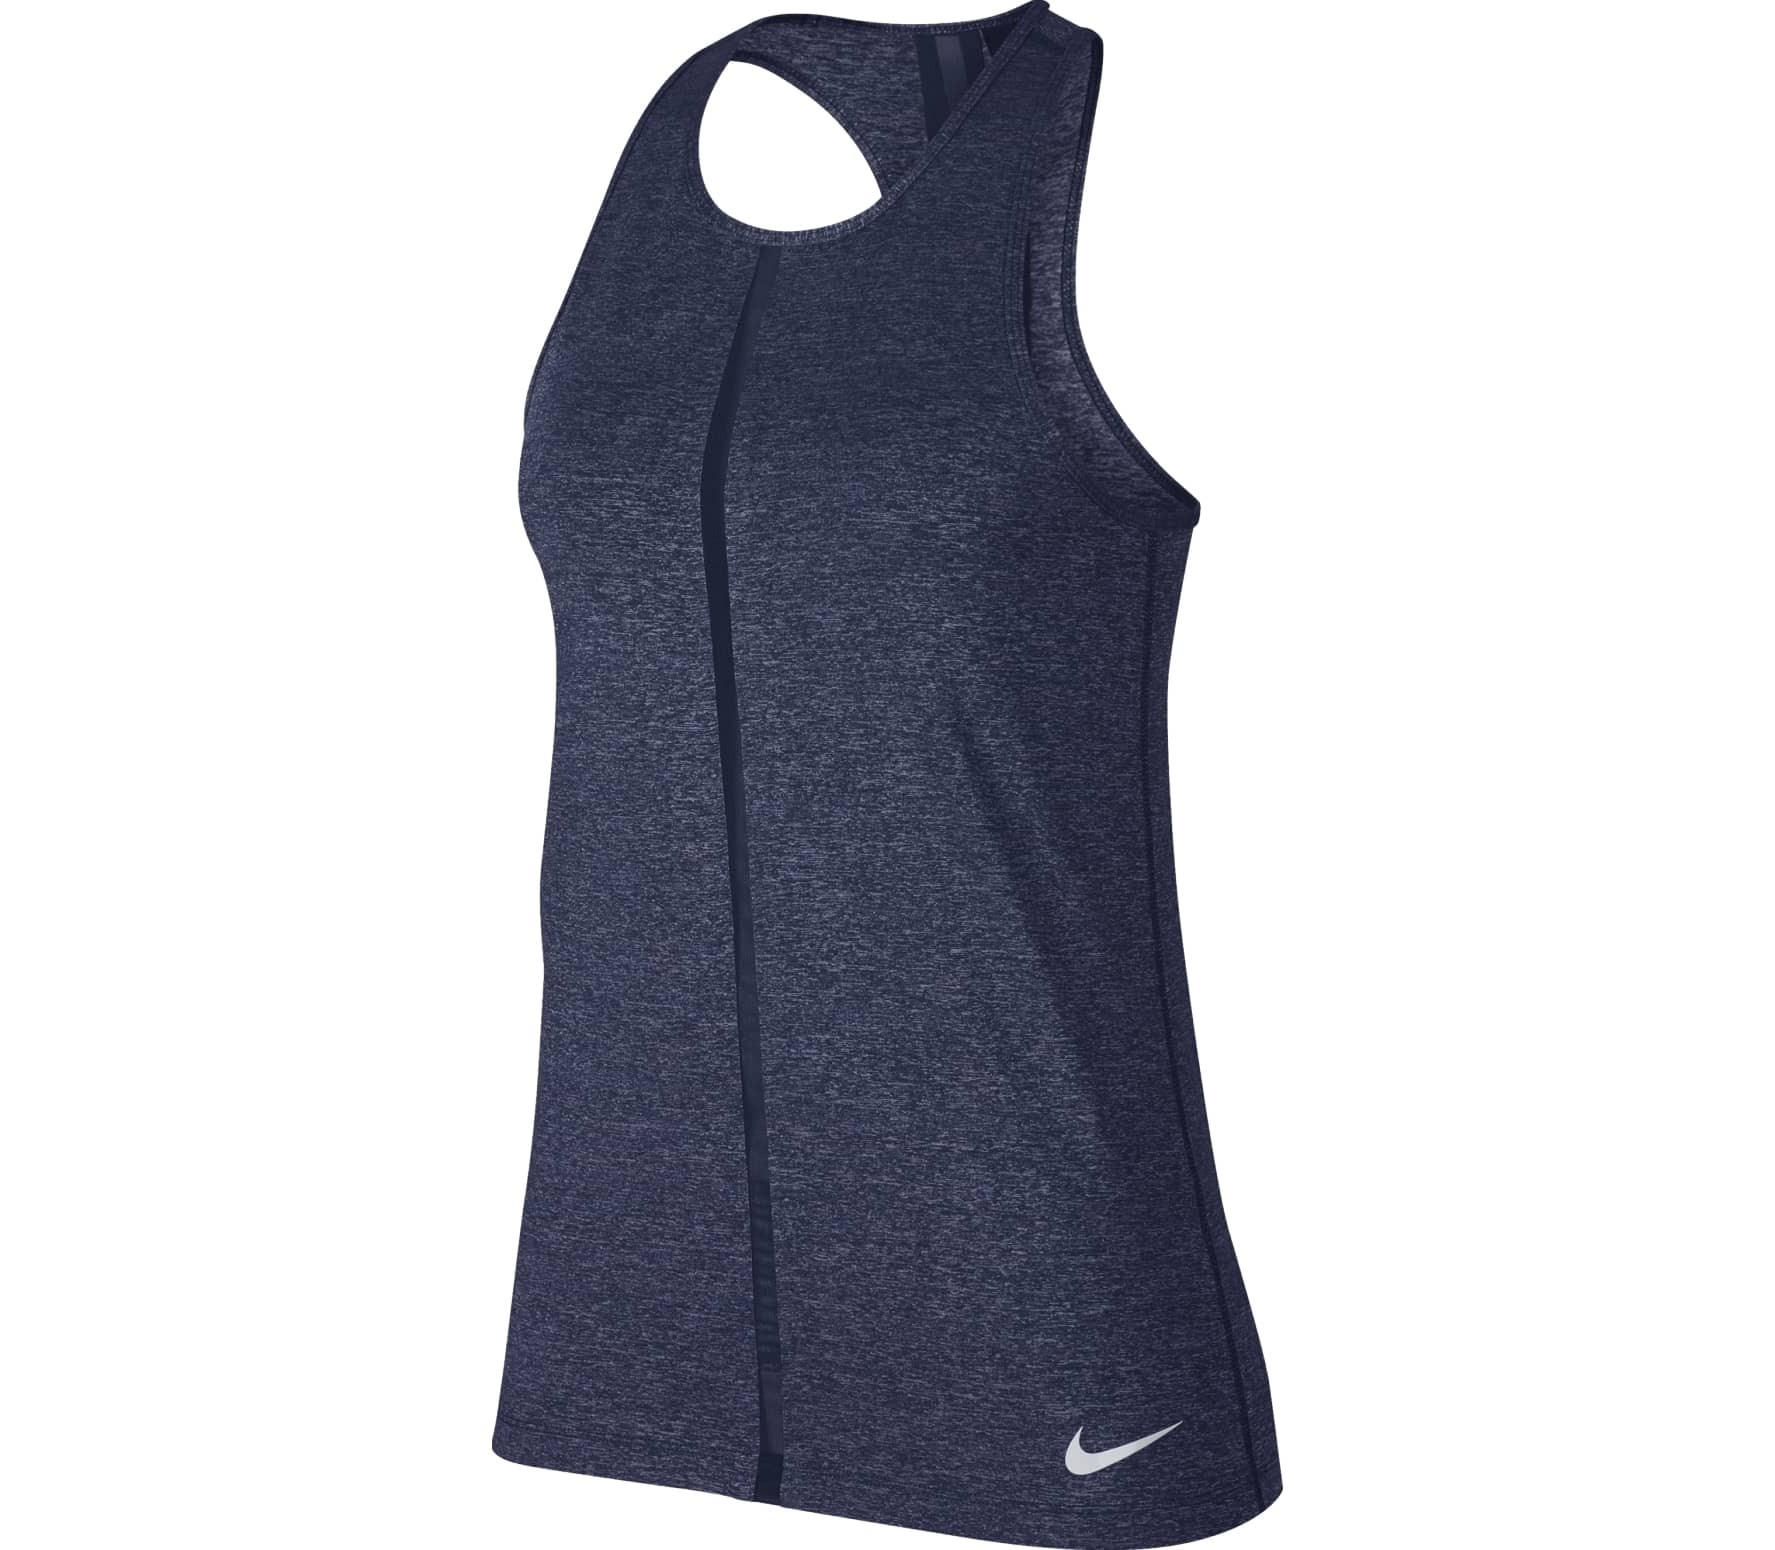 2fae1adfefa44 Nike - Pro HyperCool women s tank top (dark blue) - buy it at the ...